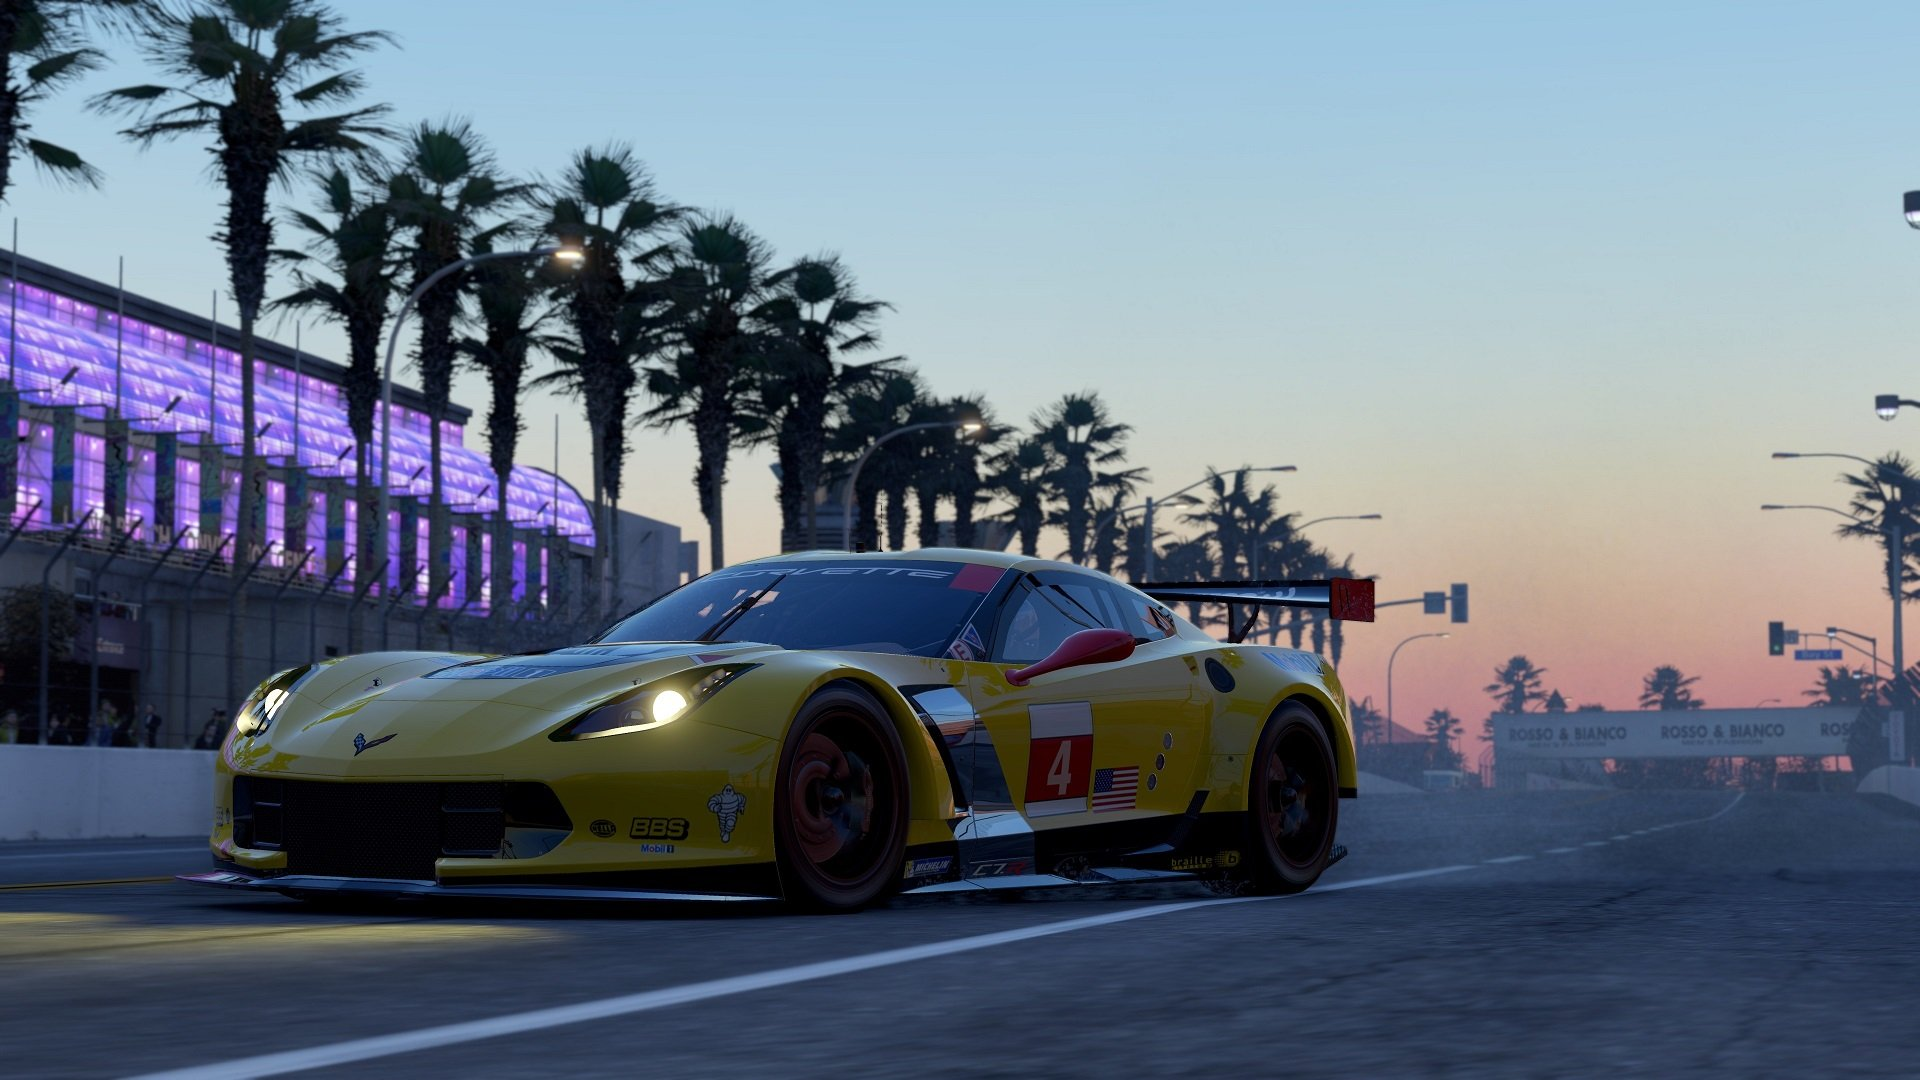 Project CARS 2 is coming at the king, it best not miss screenshot